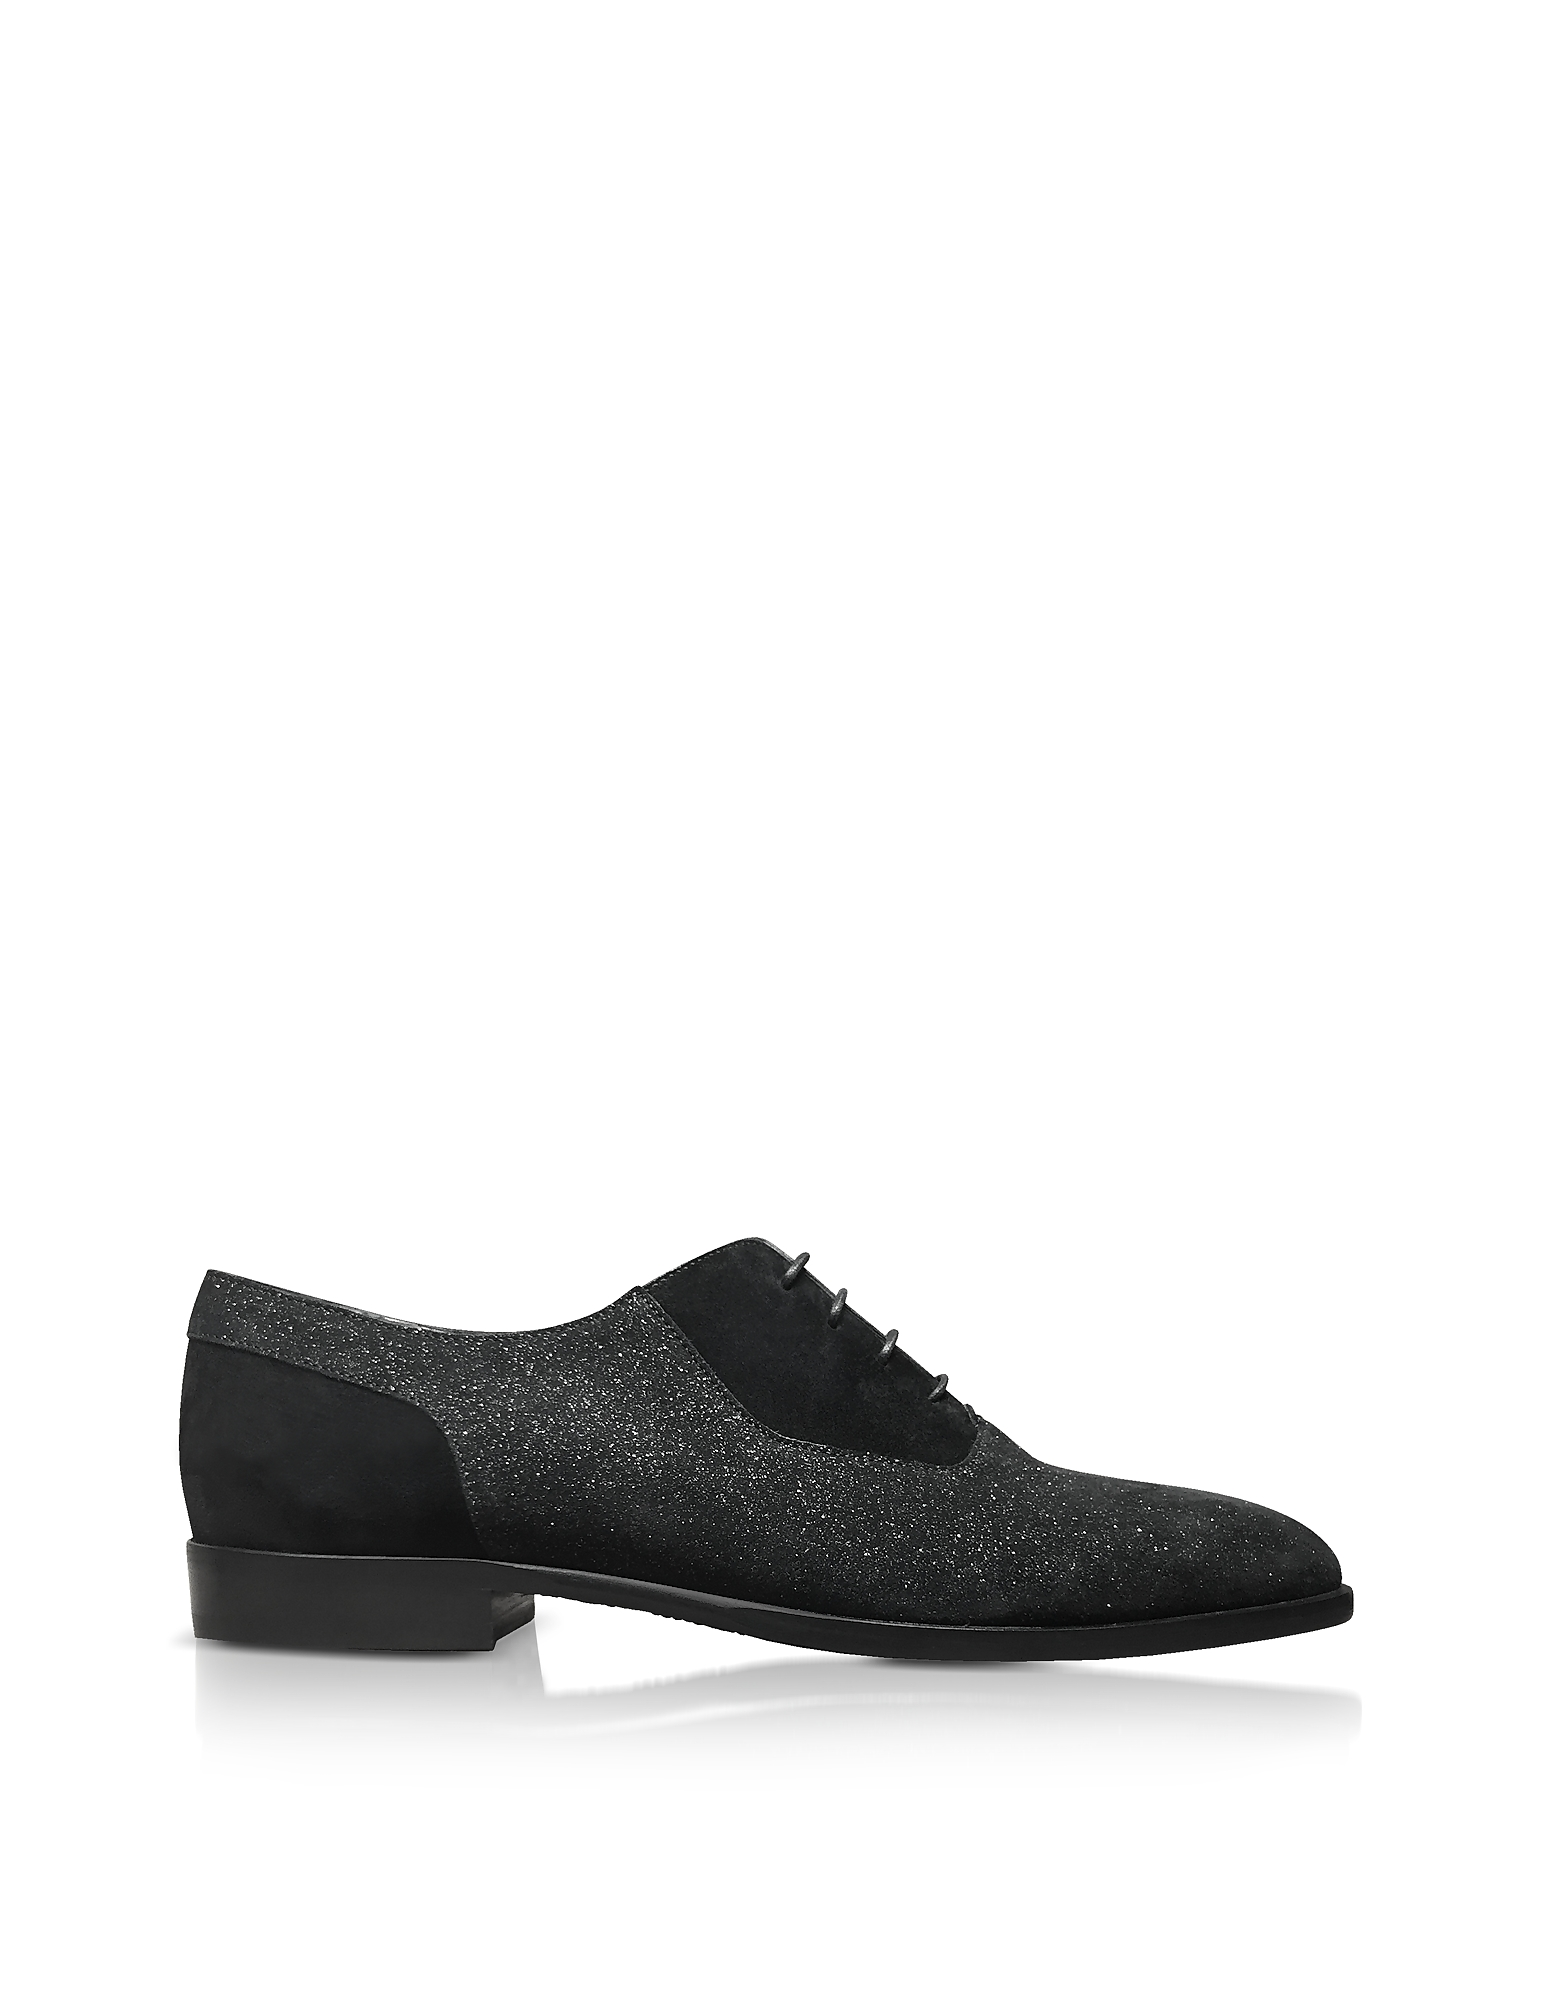 TYLER BLACK SOFT GLITTER SUEDE LACE UP SHOES from FORZIERI